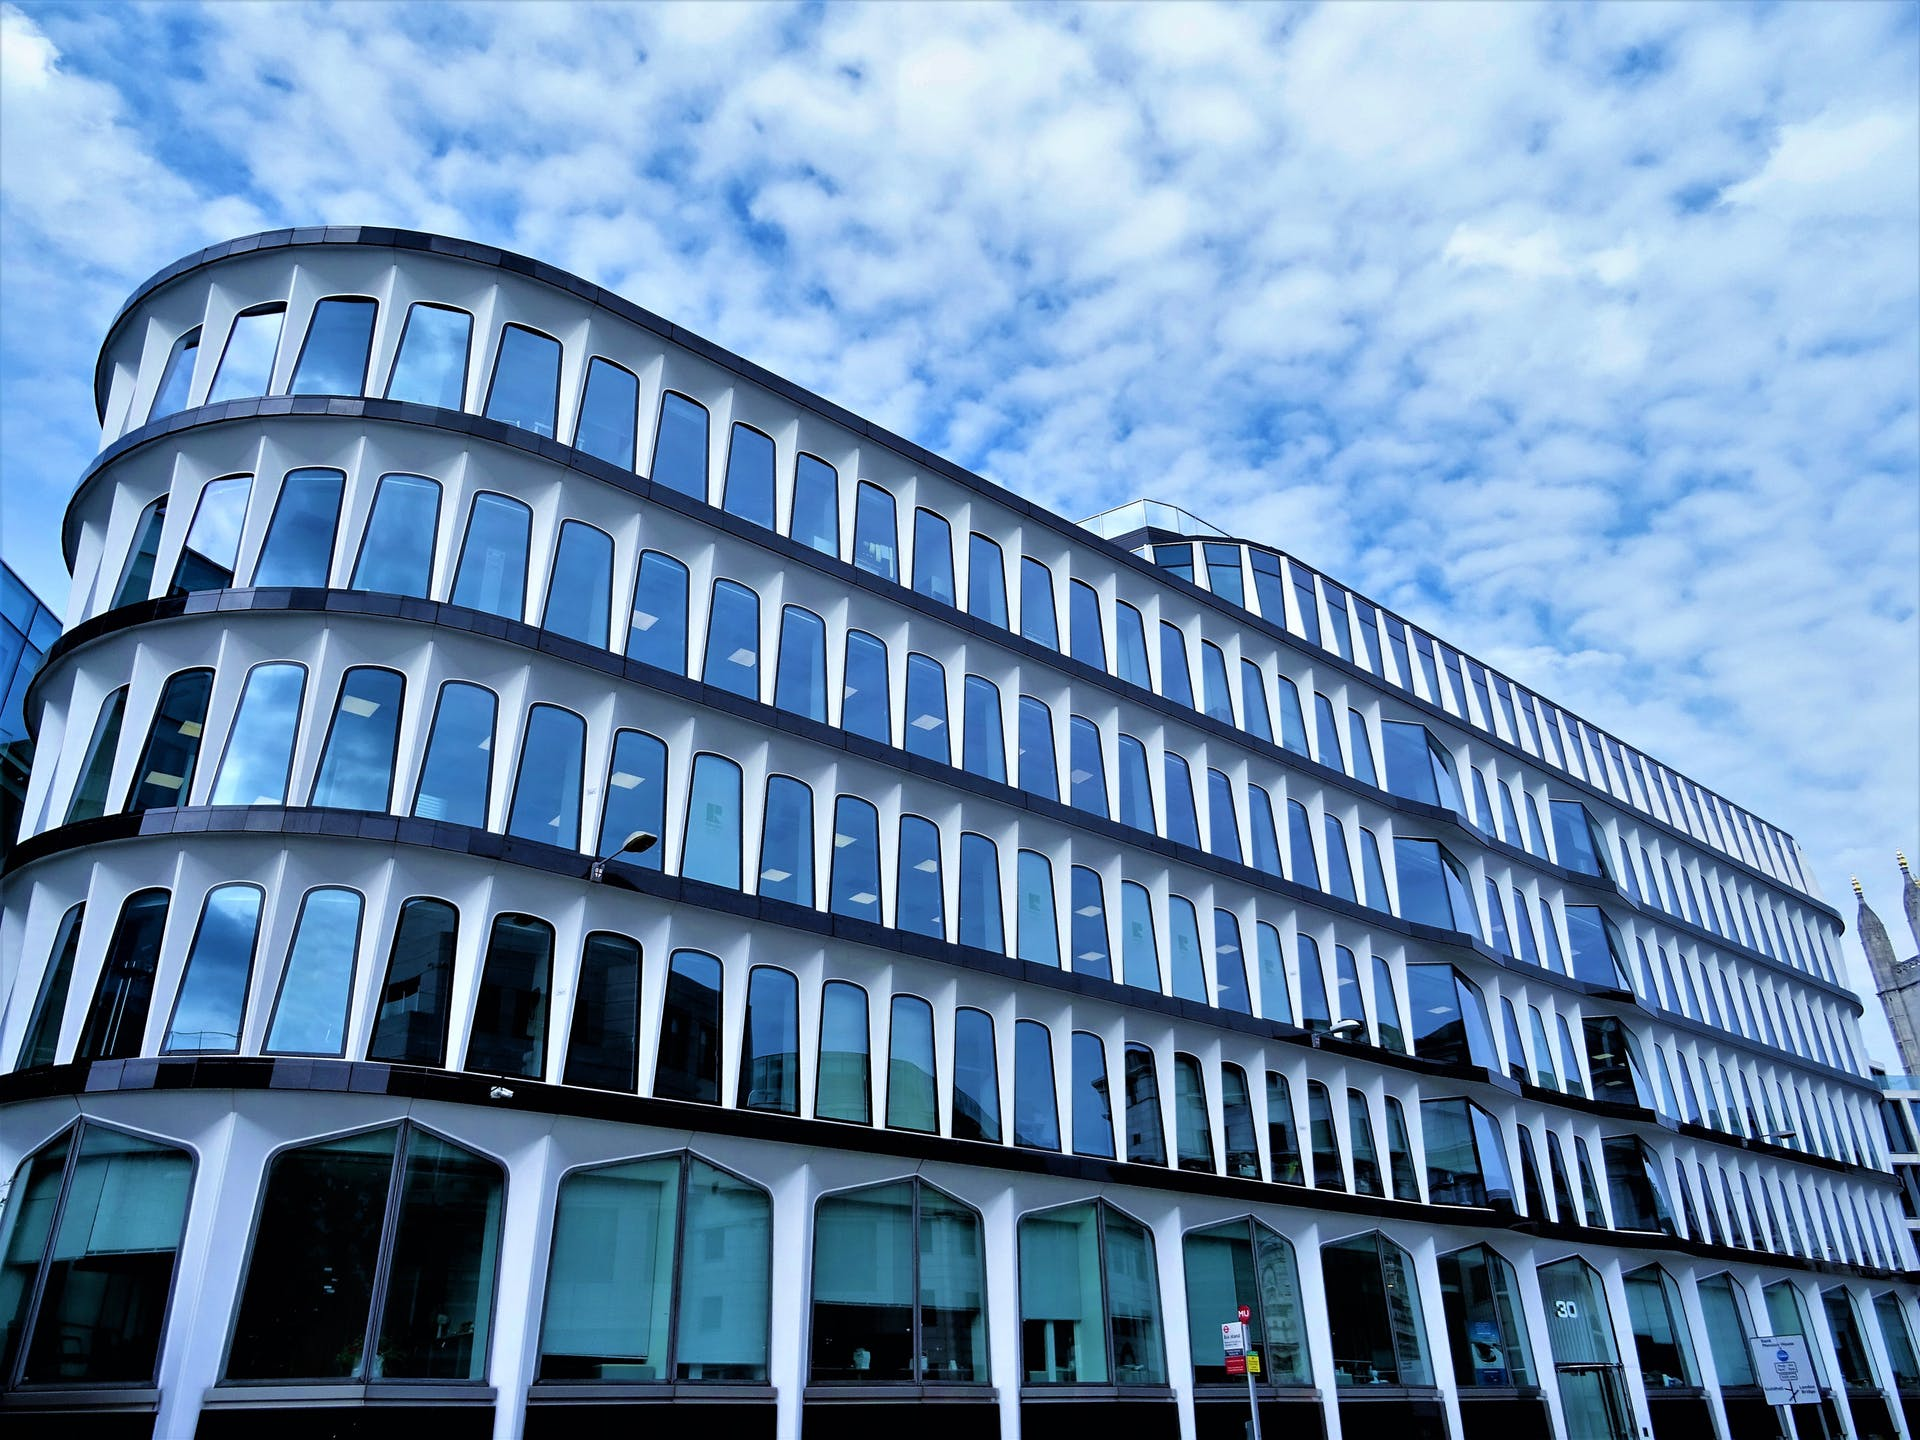 facade architectural design office clouds daylight city glass windows corporate perspective building